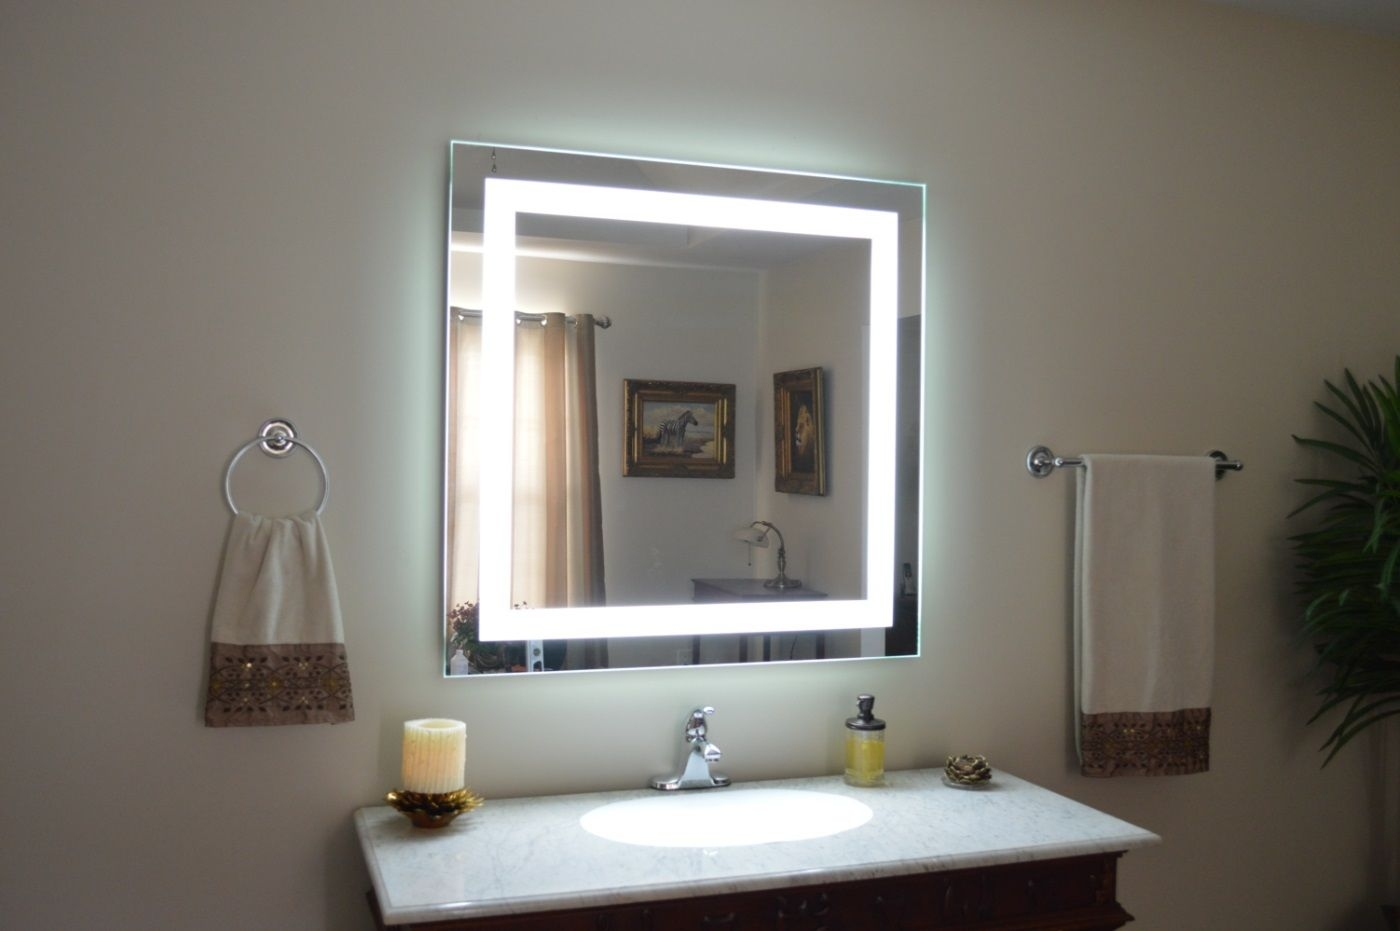 Illuminated Wall Mounted Makeup Mirror